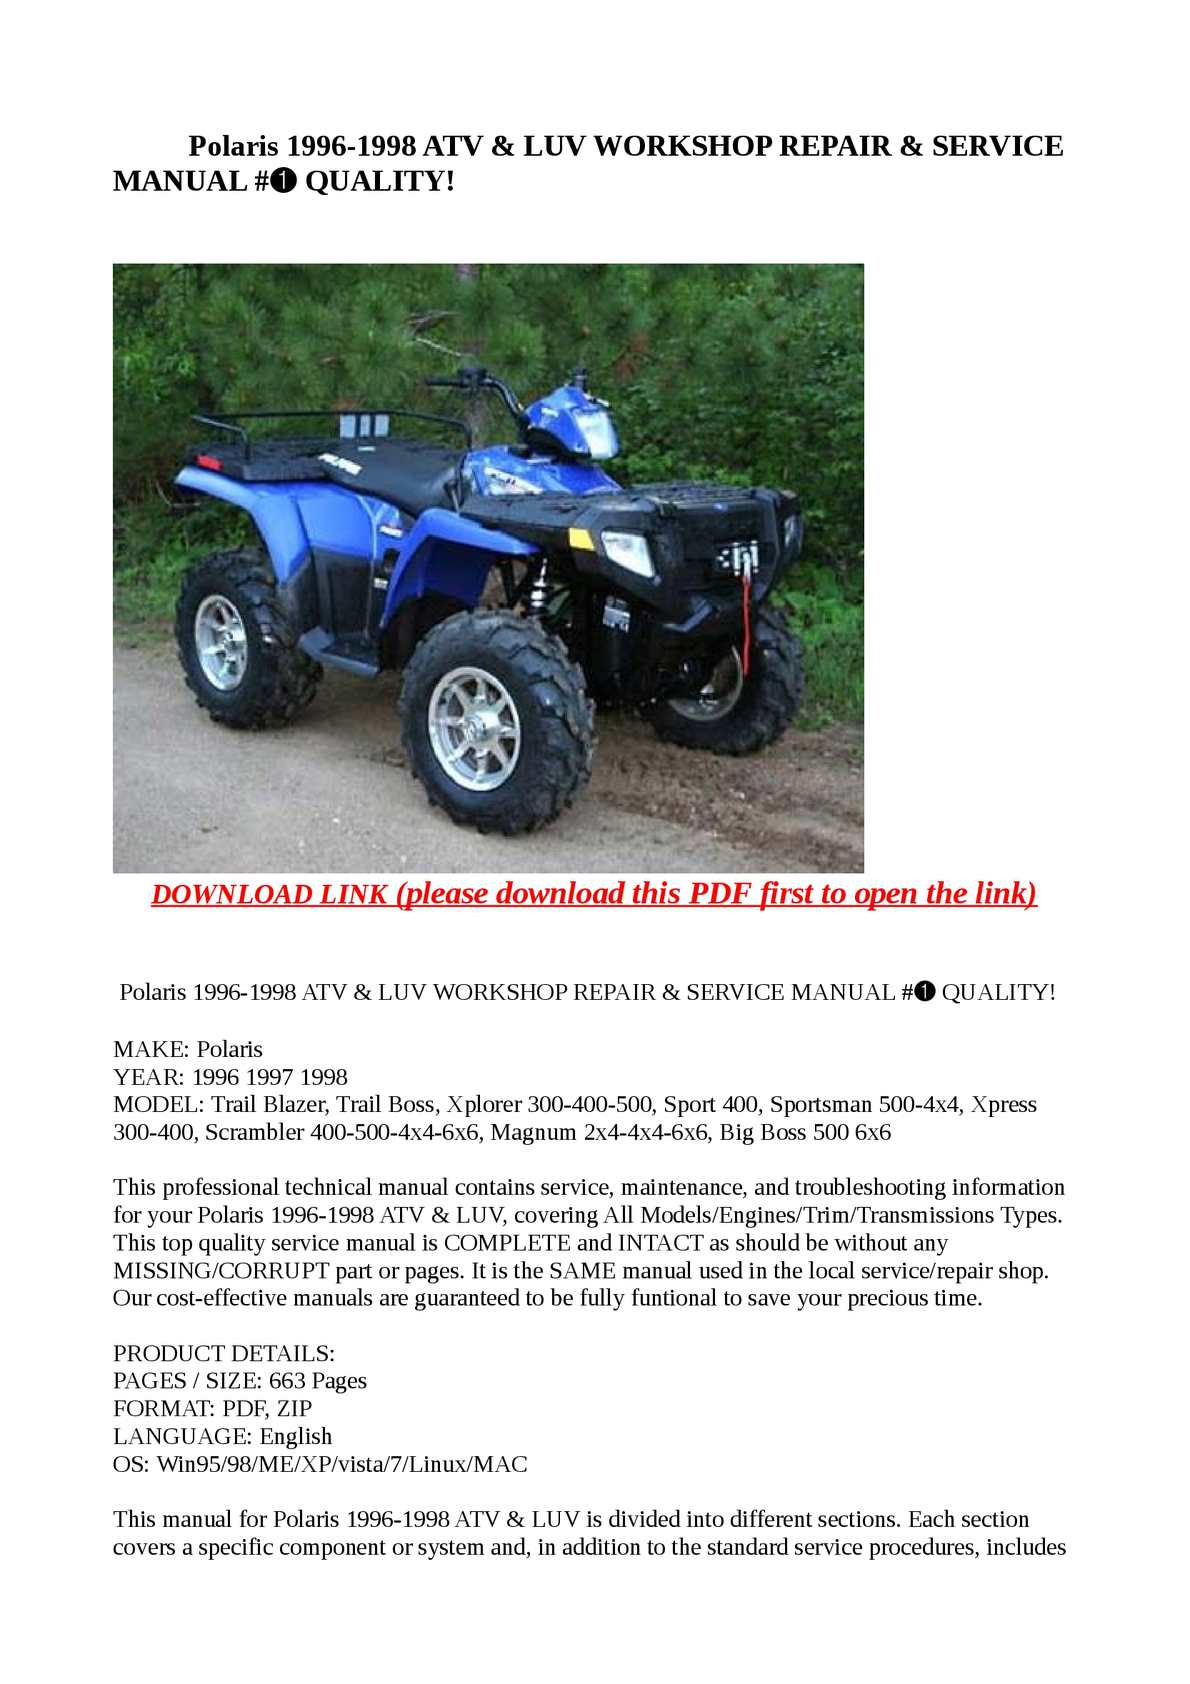 1996 polaris xplorer 300 4x4 service manual rh signaturepedagogies org uk 1999  Polaris Xpress 300 Polaris Express 300 Engine Diagram